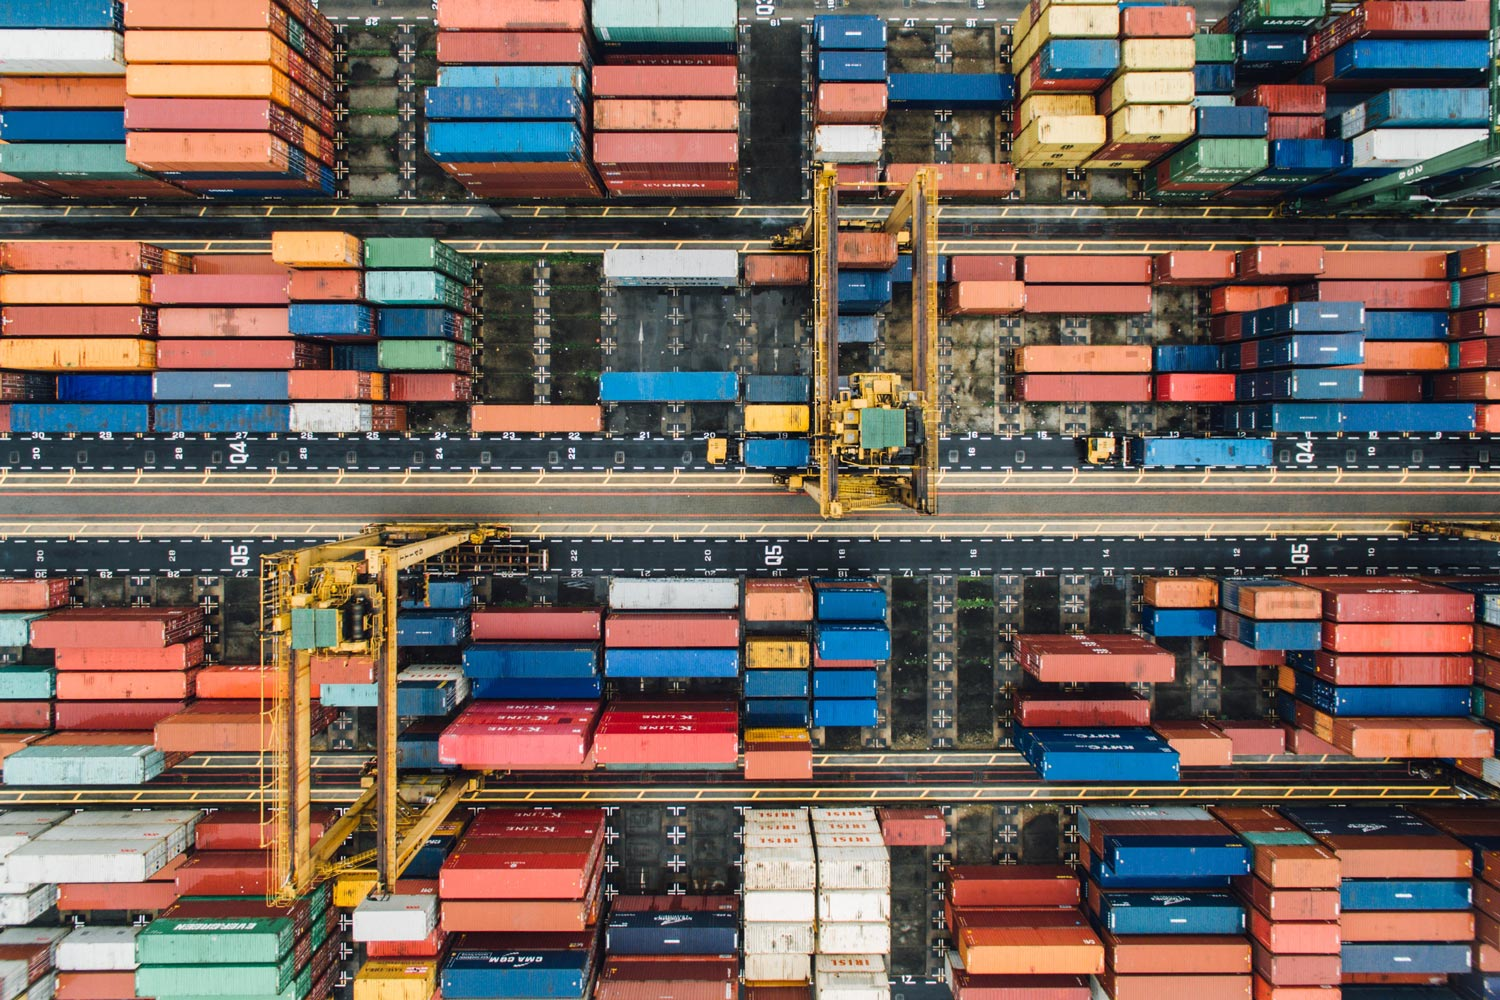 Aerial photo of colourful storage containers.